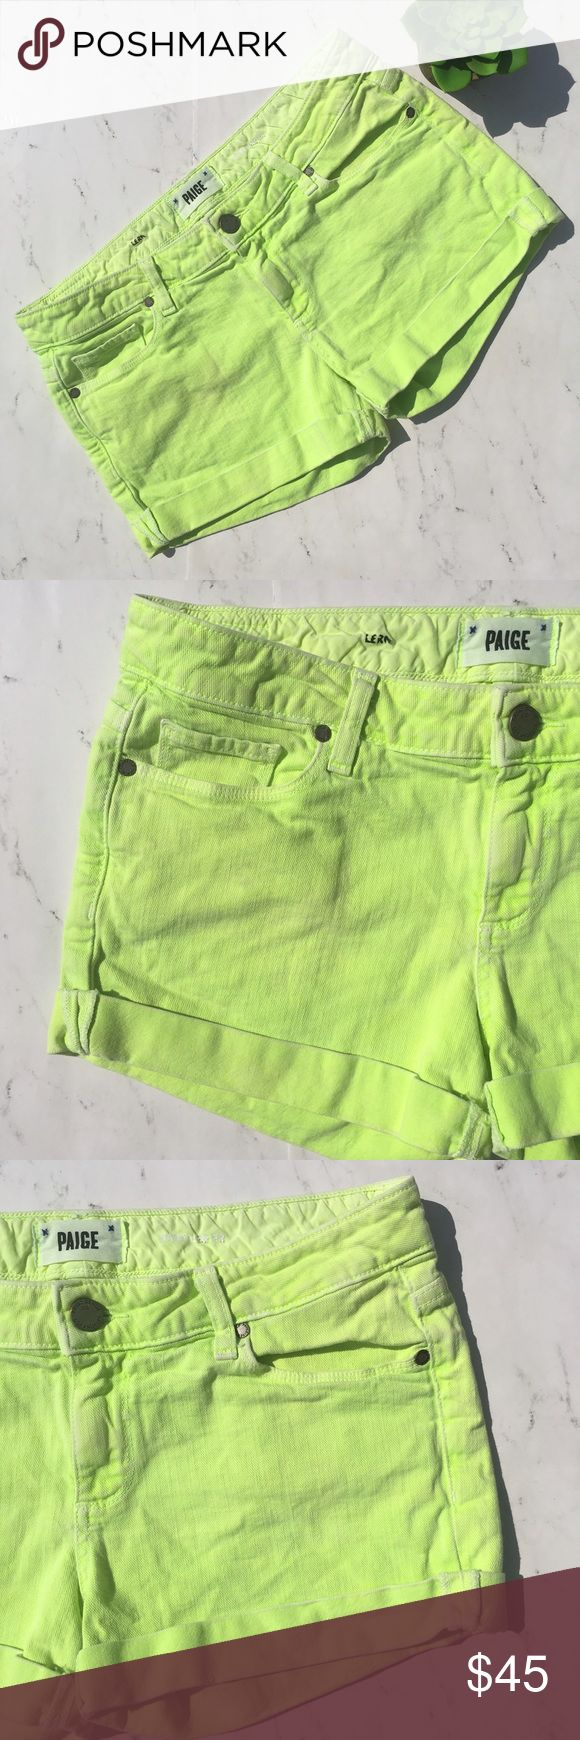 "Paige Jimmy Jimmy Short Shorts Size 28 Neon Green This is a pair of Paige Jimmy Jimmy Short Shorts • Size: 28 • Color: Neon Green • Excellent used condition • Low Rise • Stretch • Cuffed hem • 5-pocket • Tiny rip on back logo • Note: name of owner on inside waist (very discreet) • Made of 98% Cotton 2% Elastane • Machine wash • Made in USA • RN# 27002 • Approx measurements: Waist: 32"". Hip: 38"". Inseam: 2 1/2"". Front Rise: 8"". Back Rise: 12 1/2"". Outseam: 10 1/2"" • PAIGE Shorts Jean Shorts"